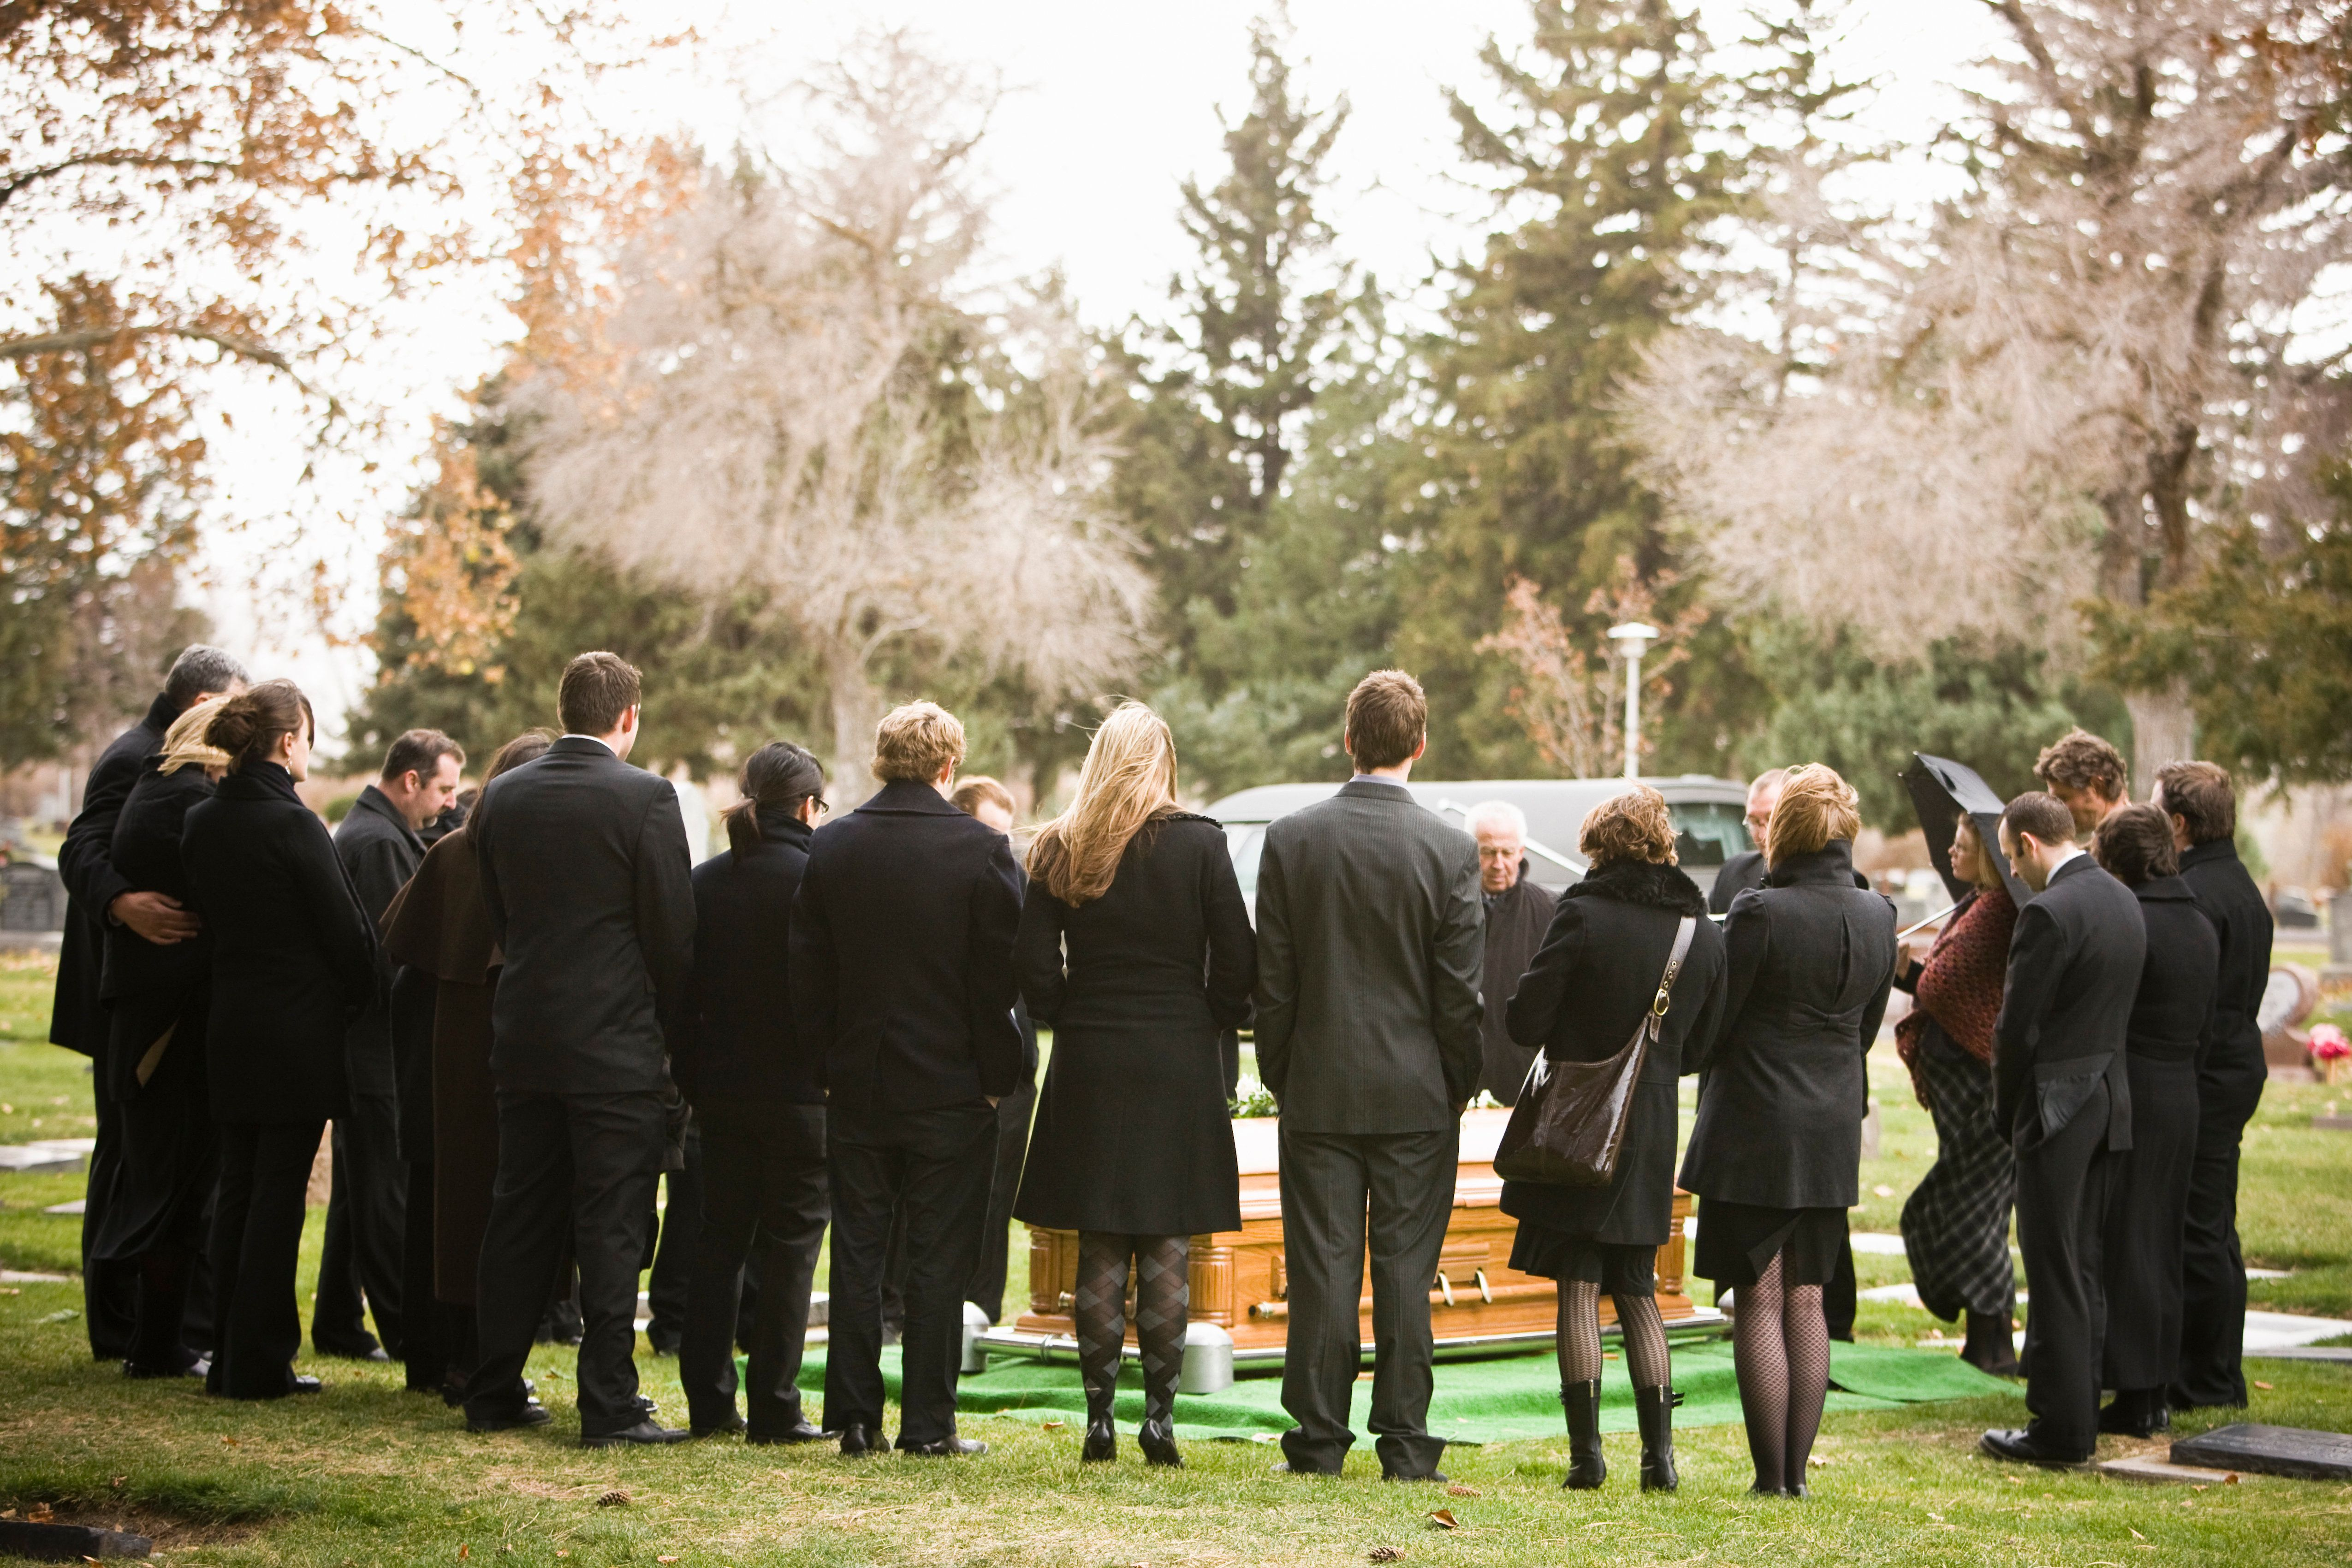 What Not To Wear To A Funeral According To Etiquette Experts